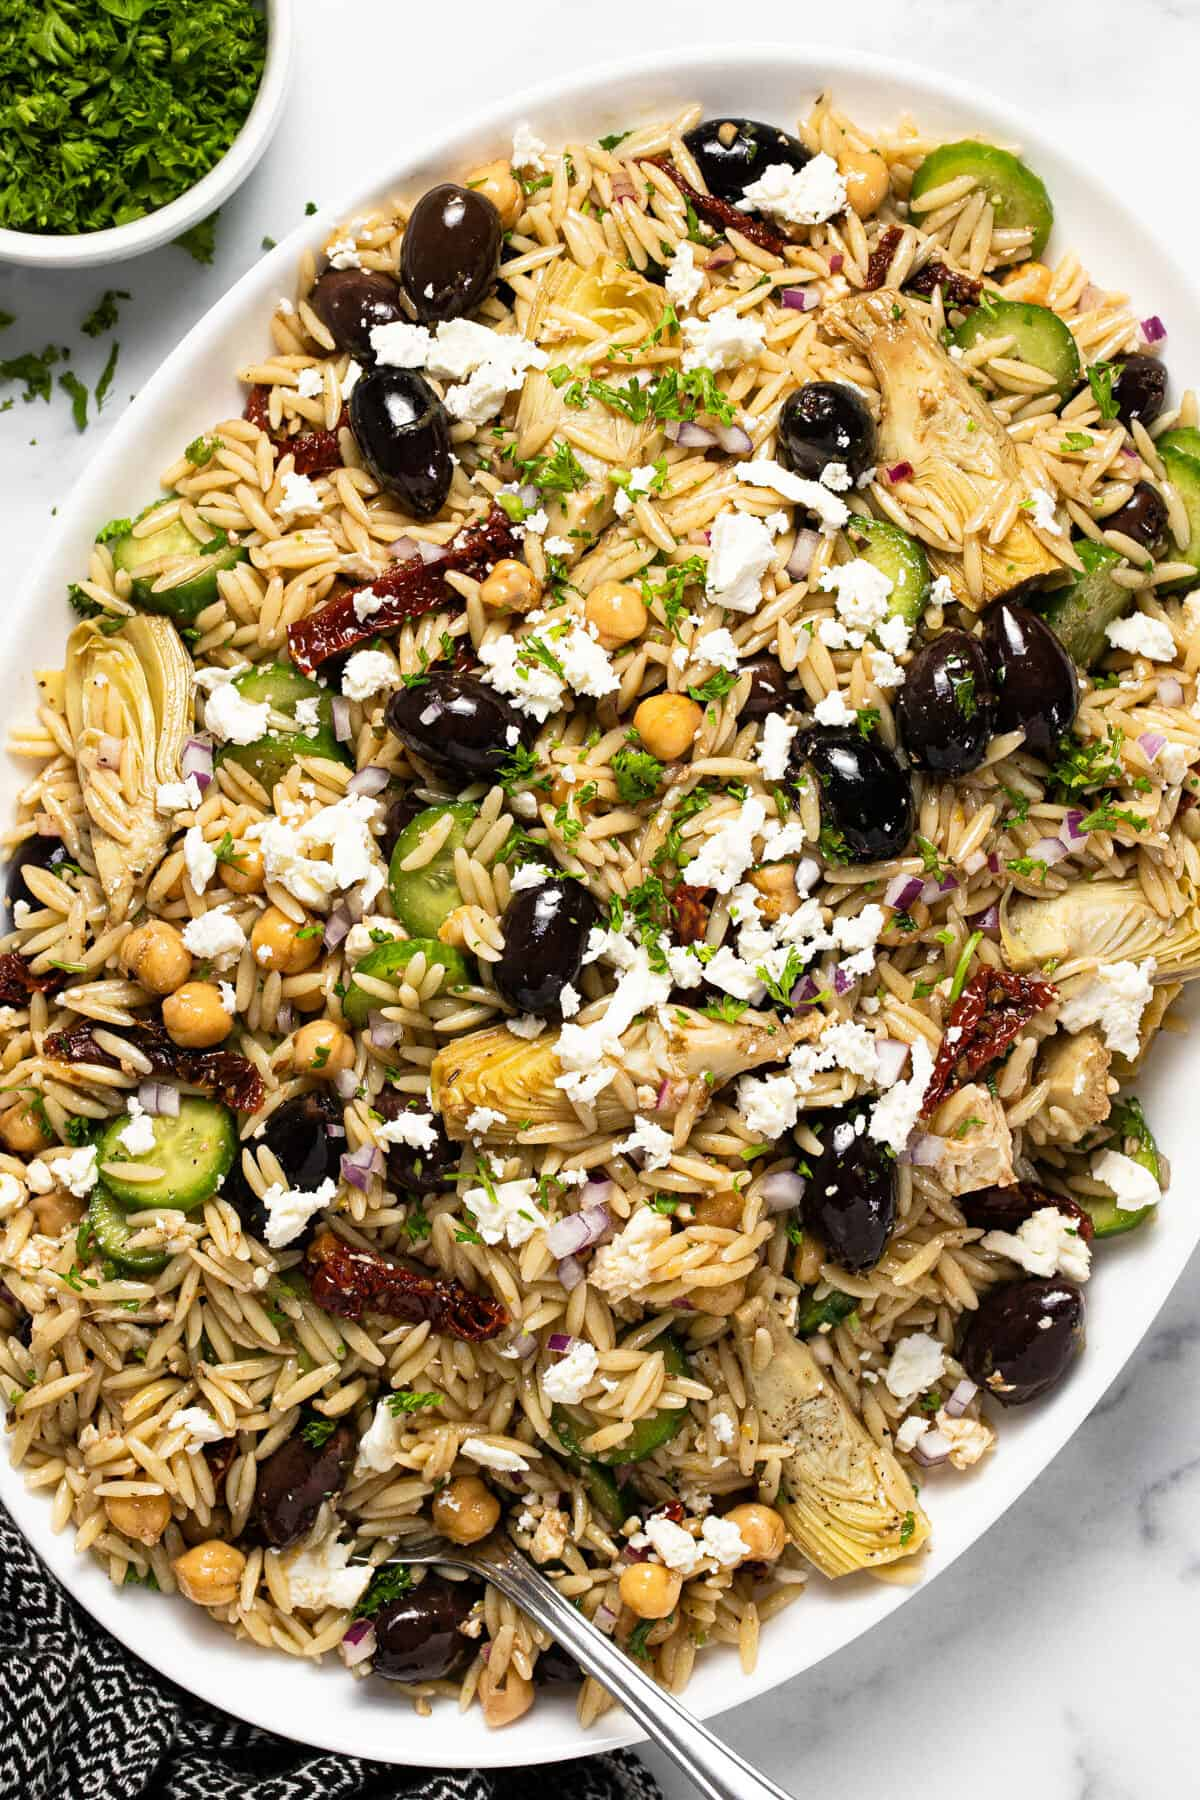 Large white platter filled with Greek orzo pasta salad